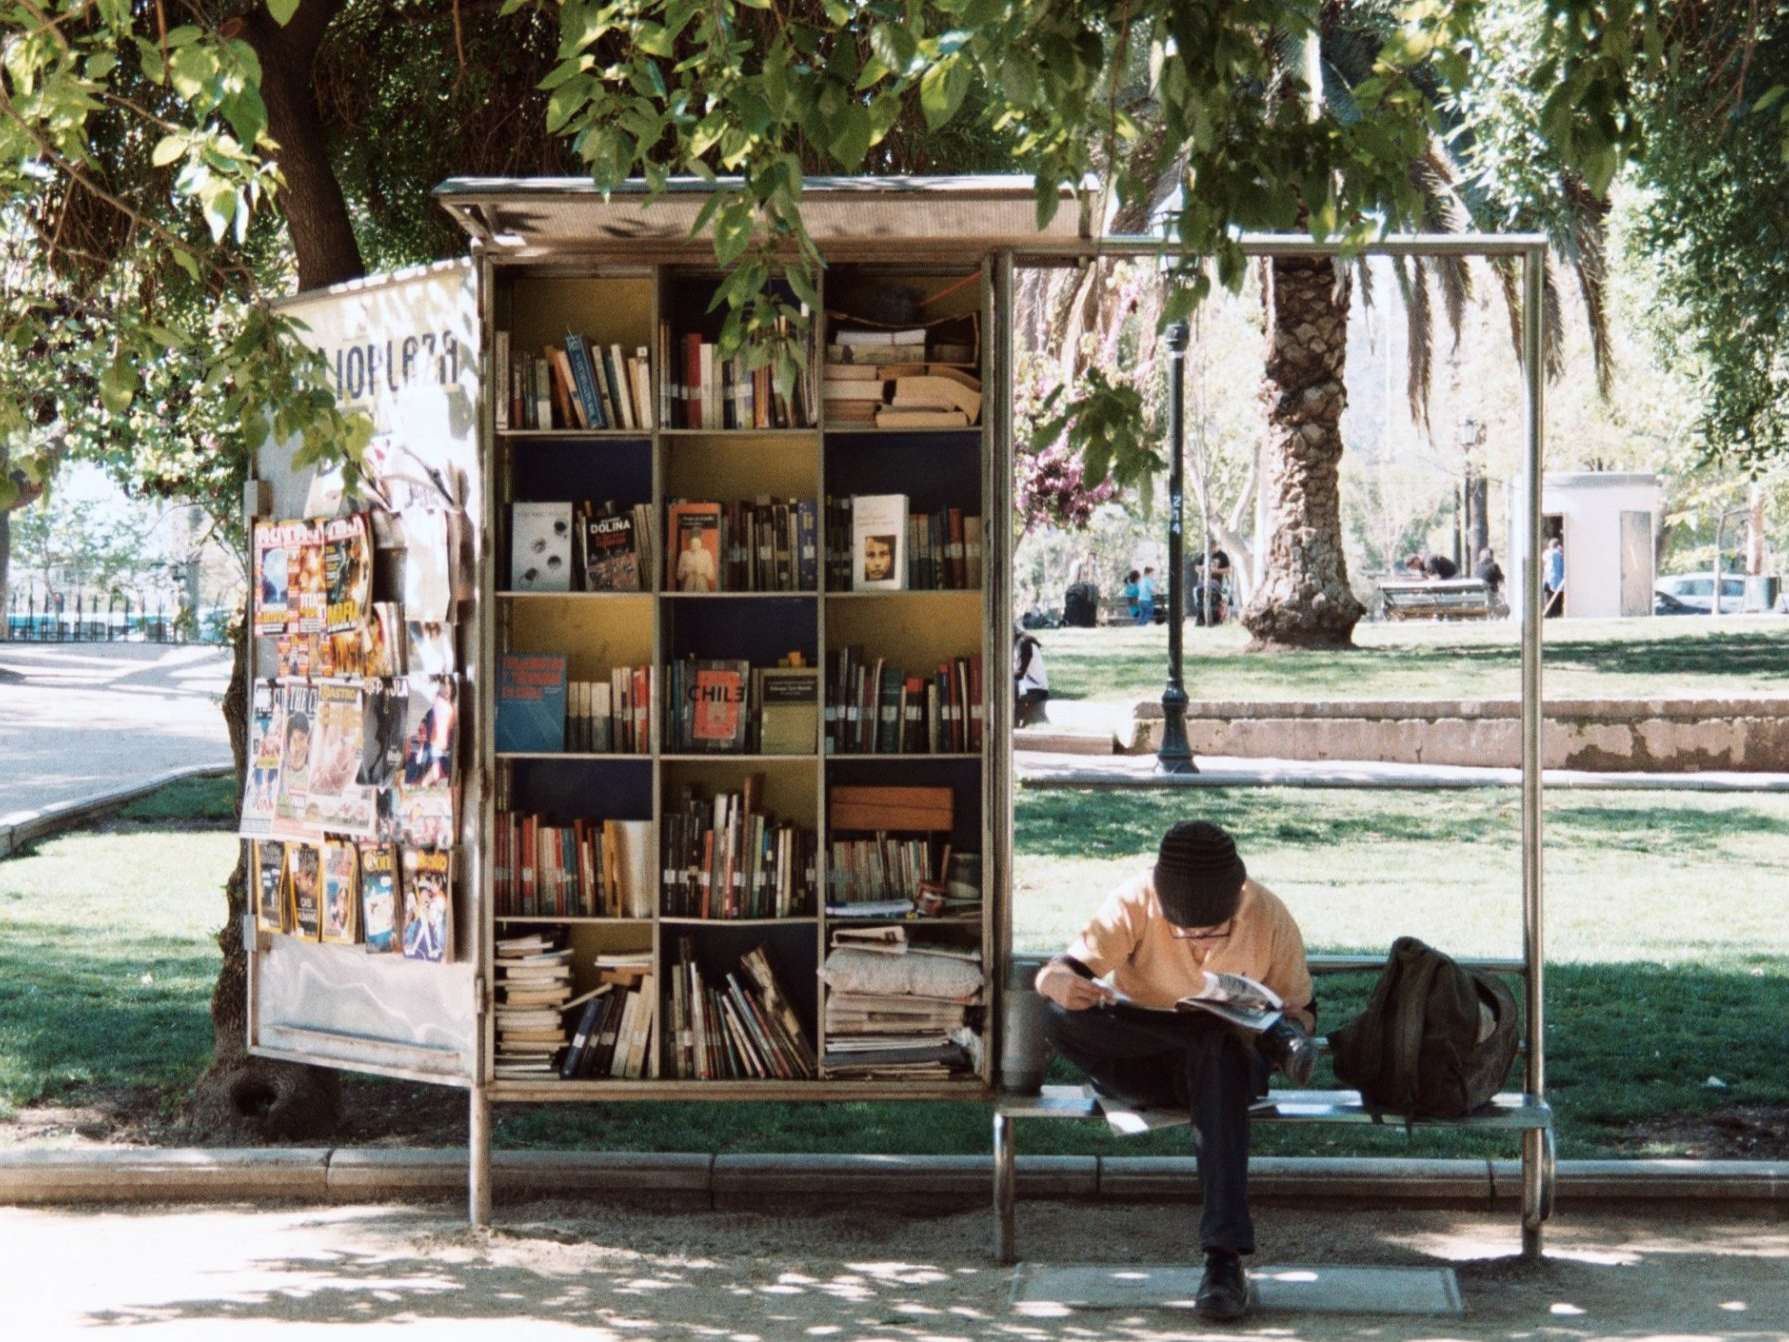 boy reading beside bookshelf in the park